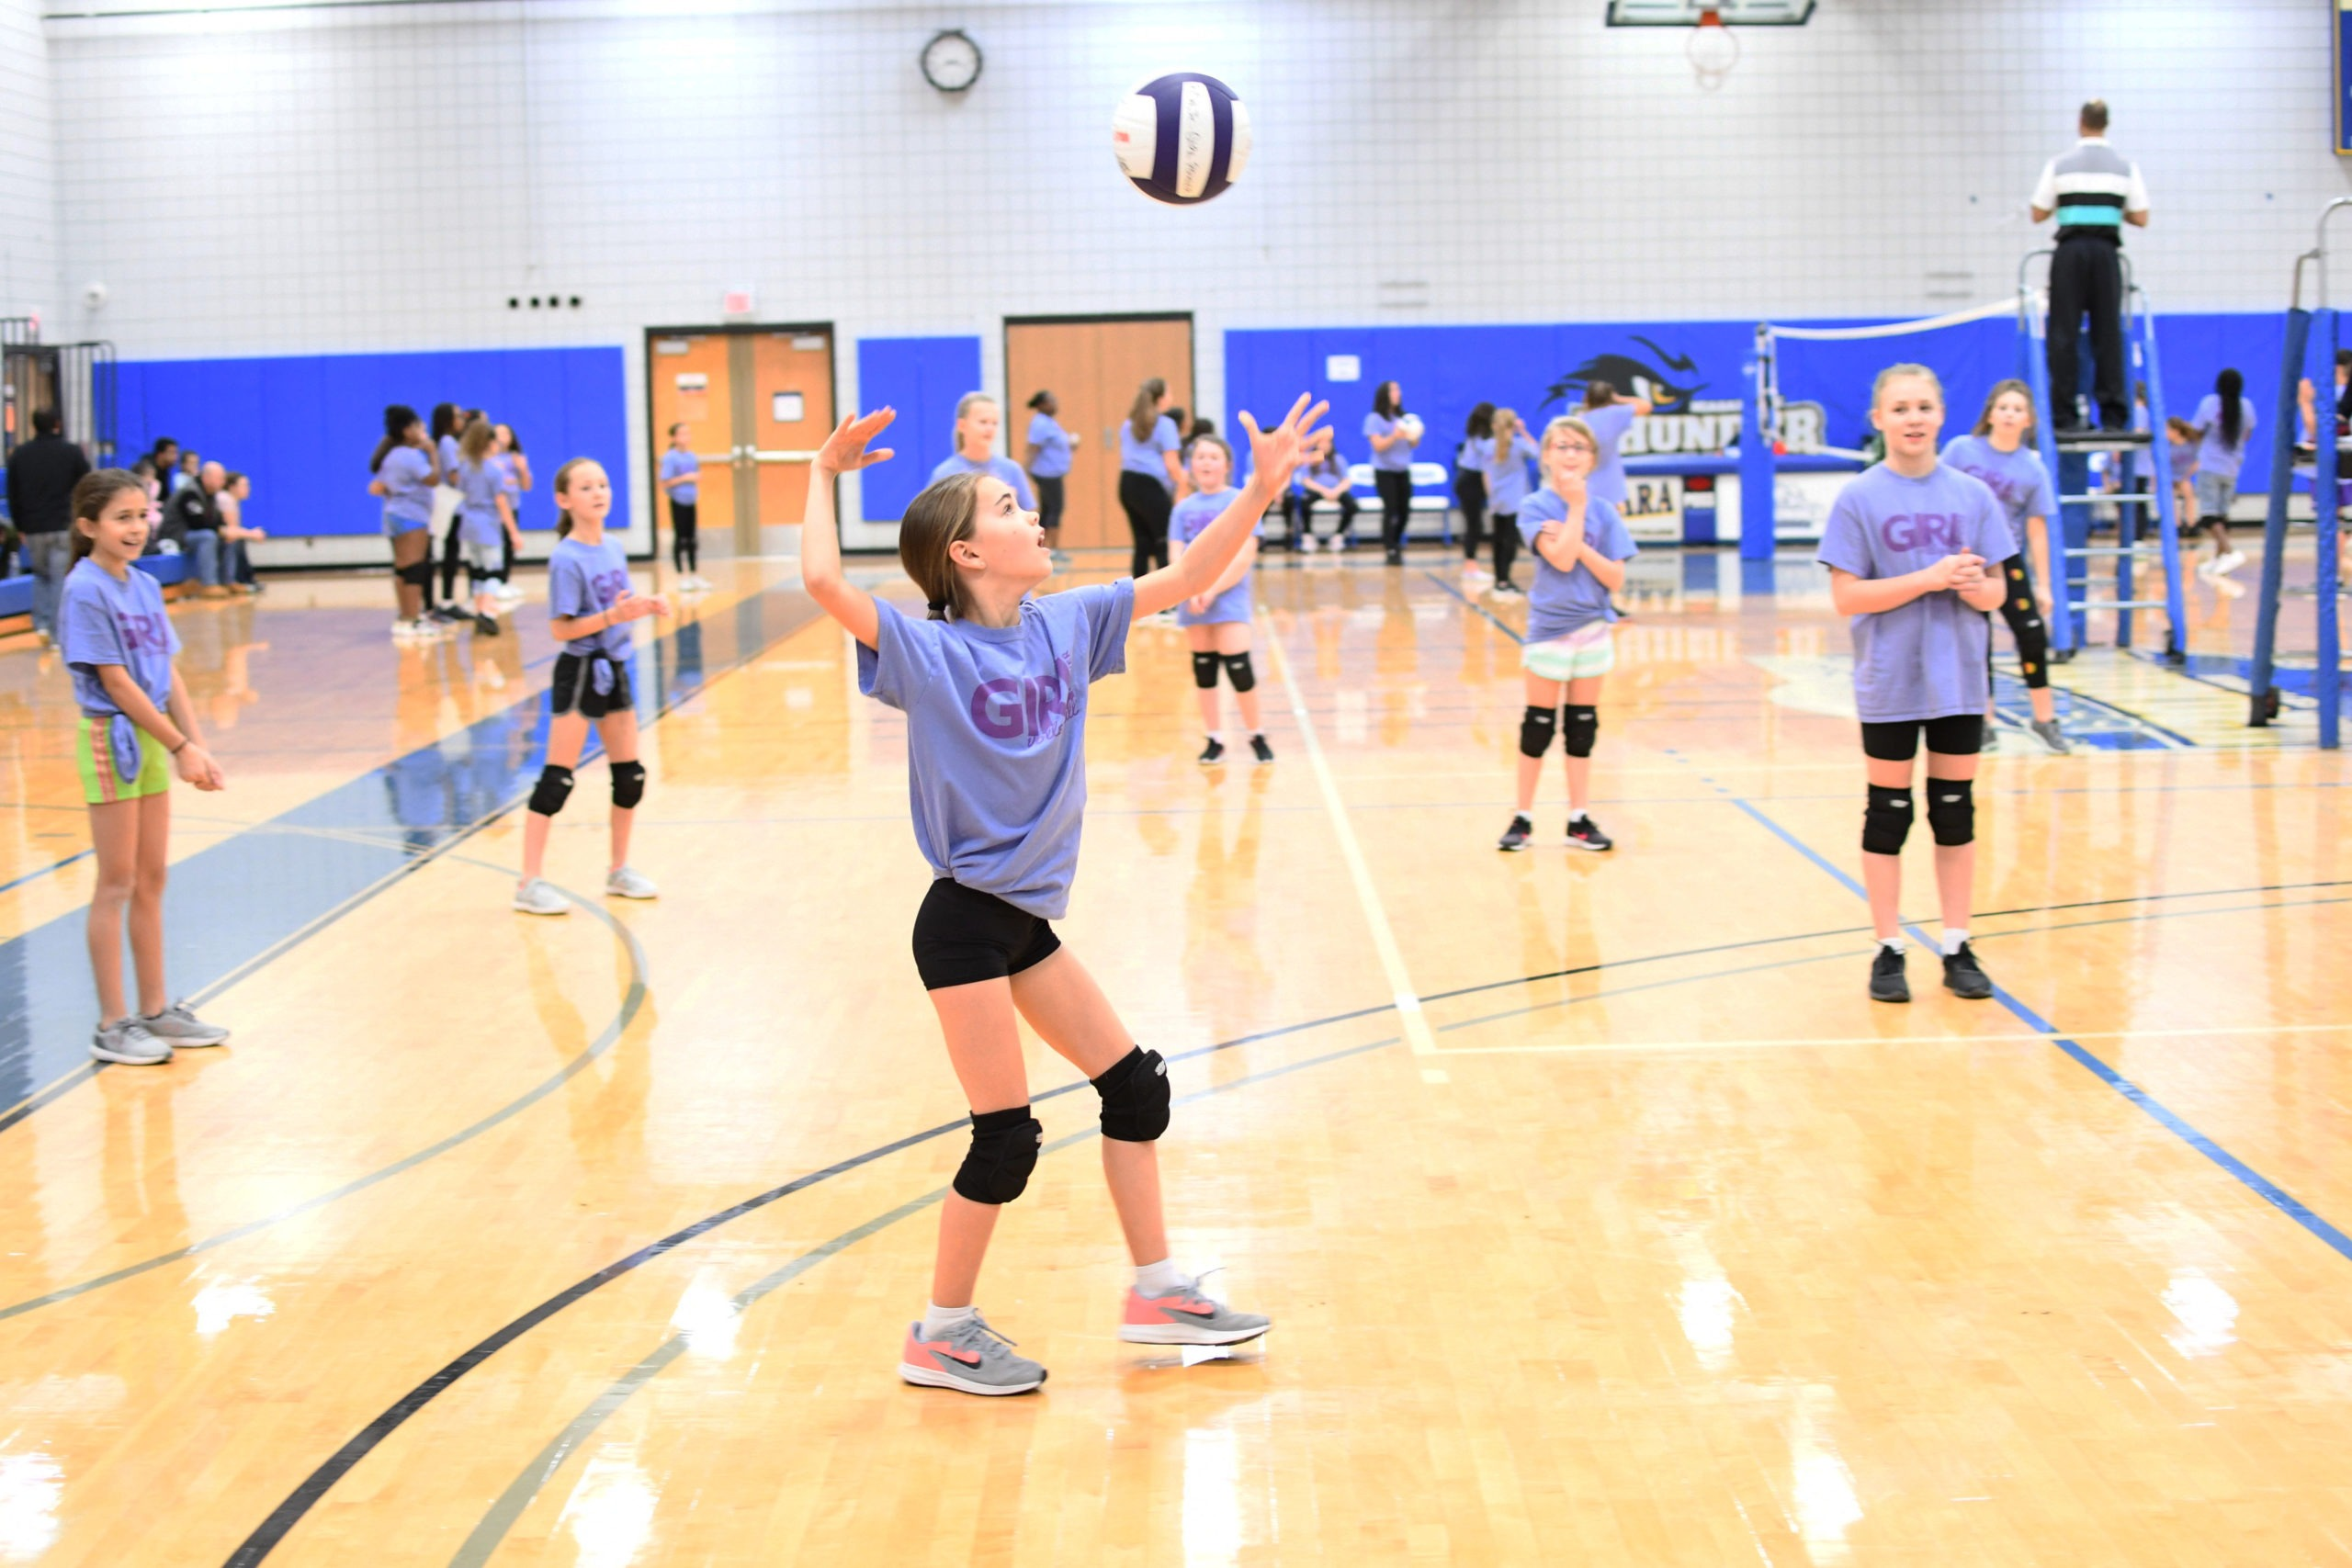 Girl Power Volleyball Tournament Held at NCCC